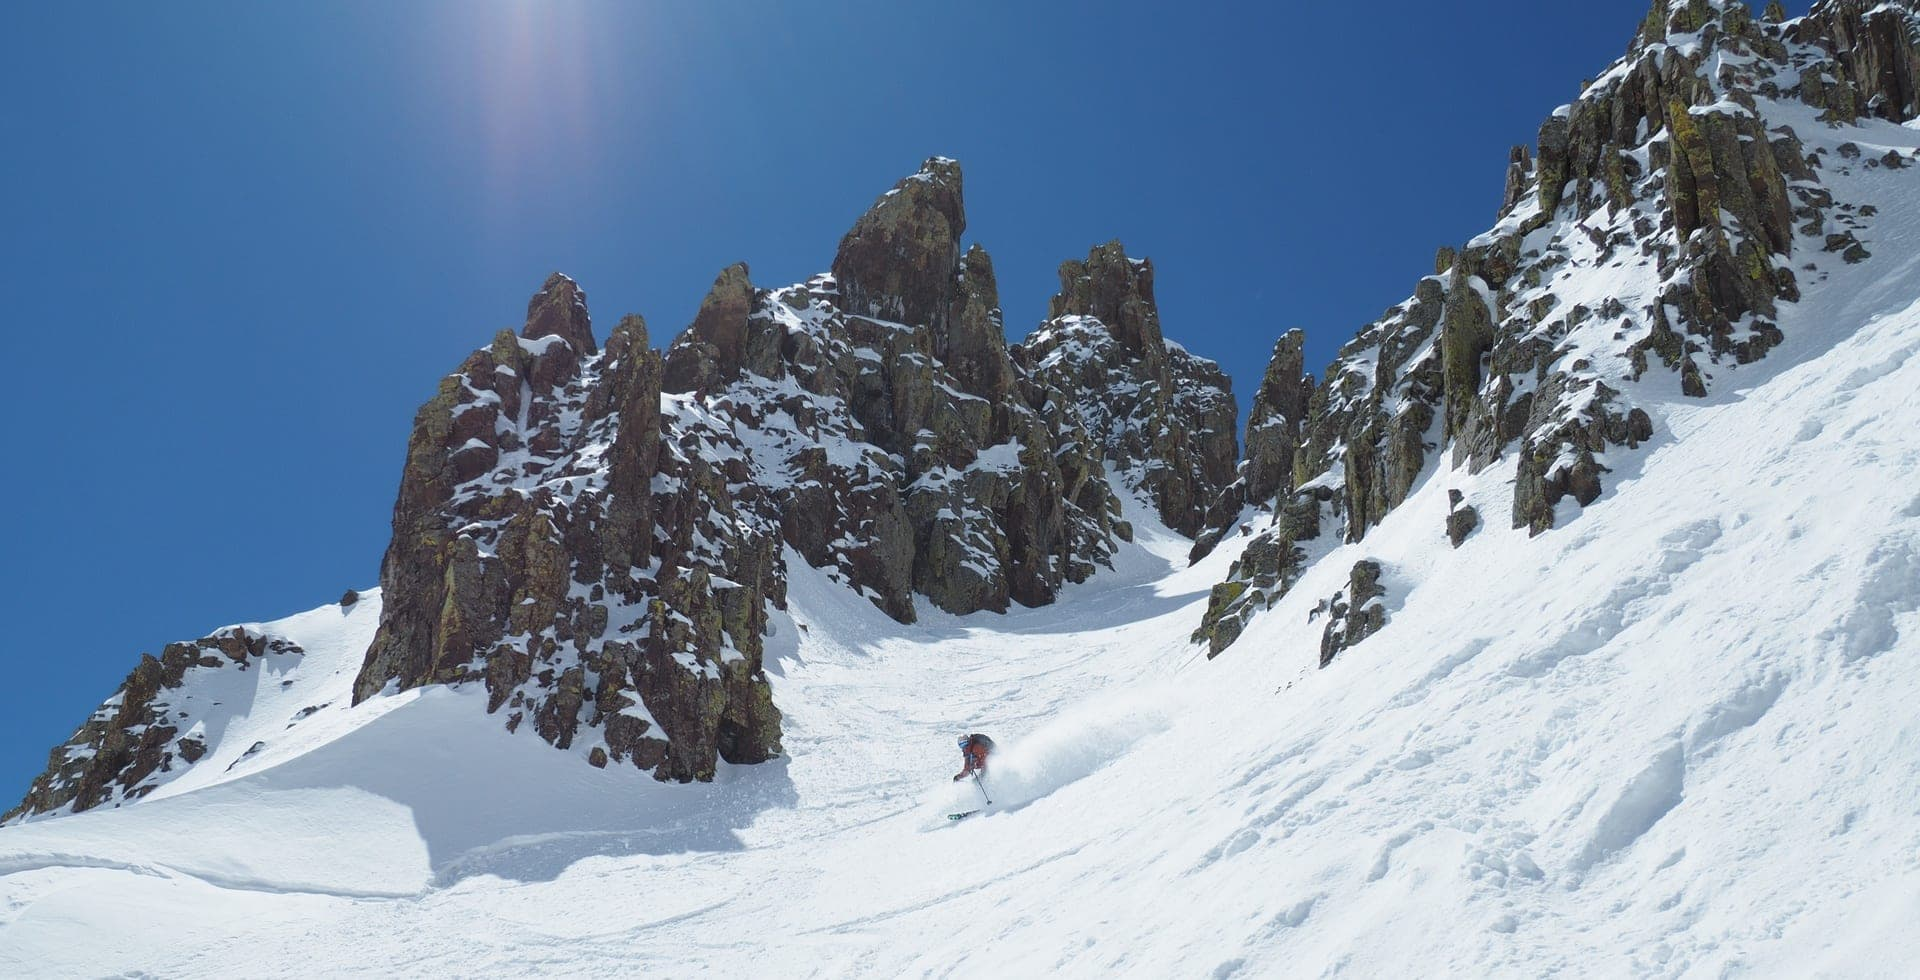 Backcountry skiing in the San Juan Mountains